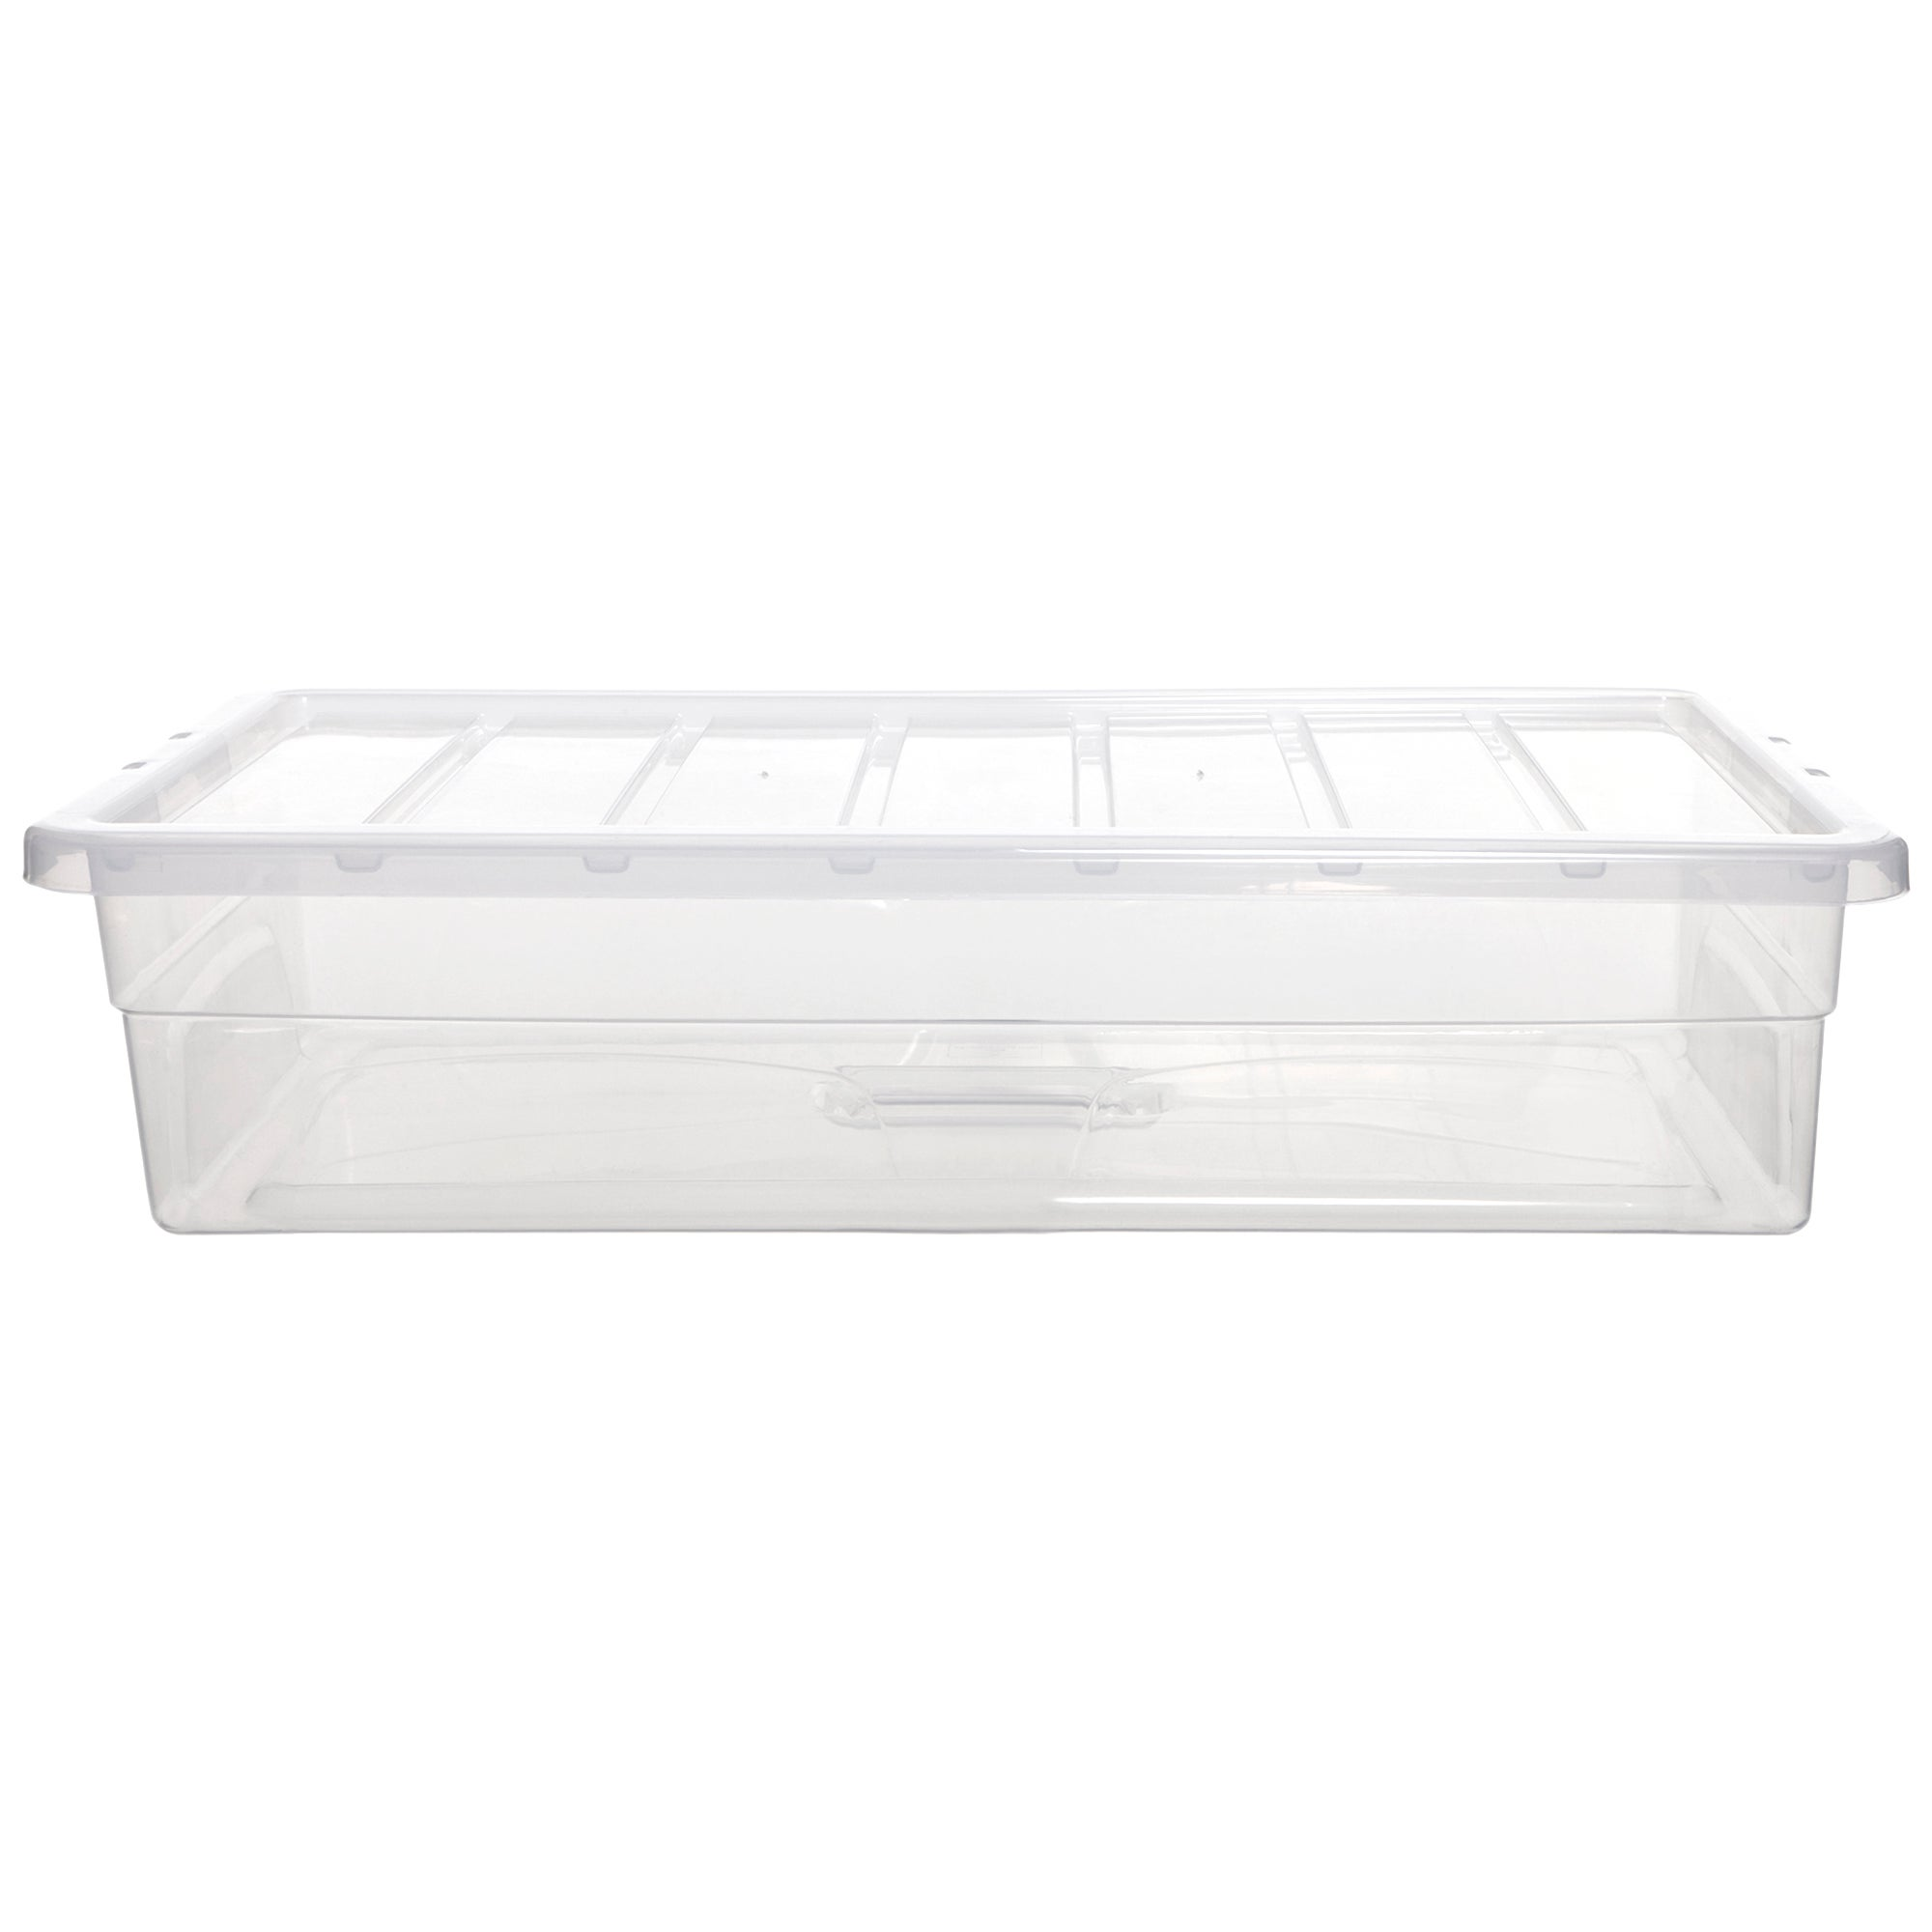 Plastic Underbed Storage Box